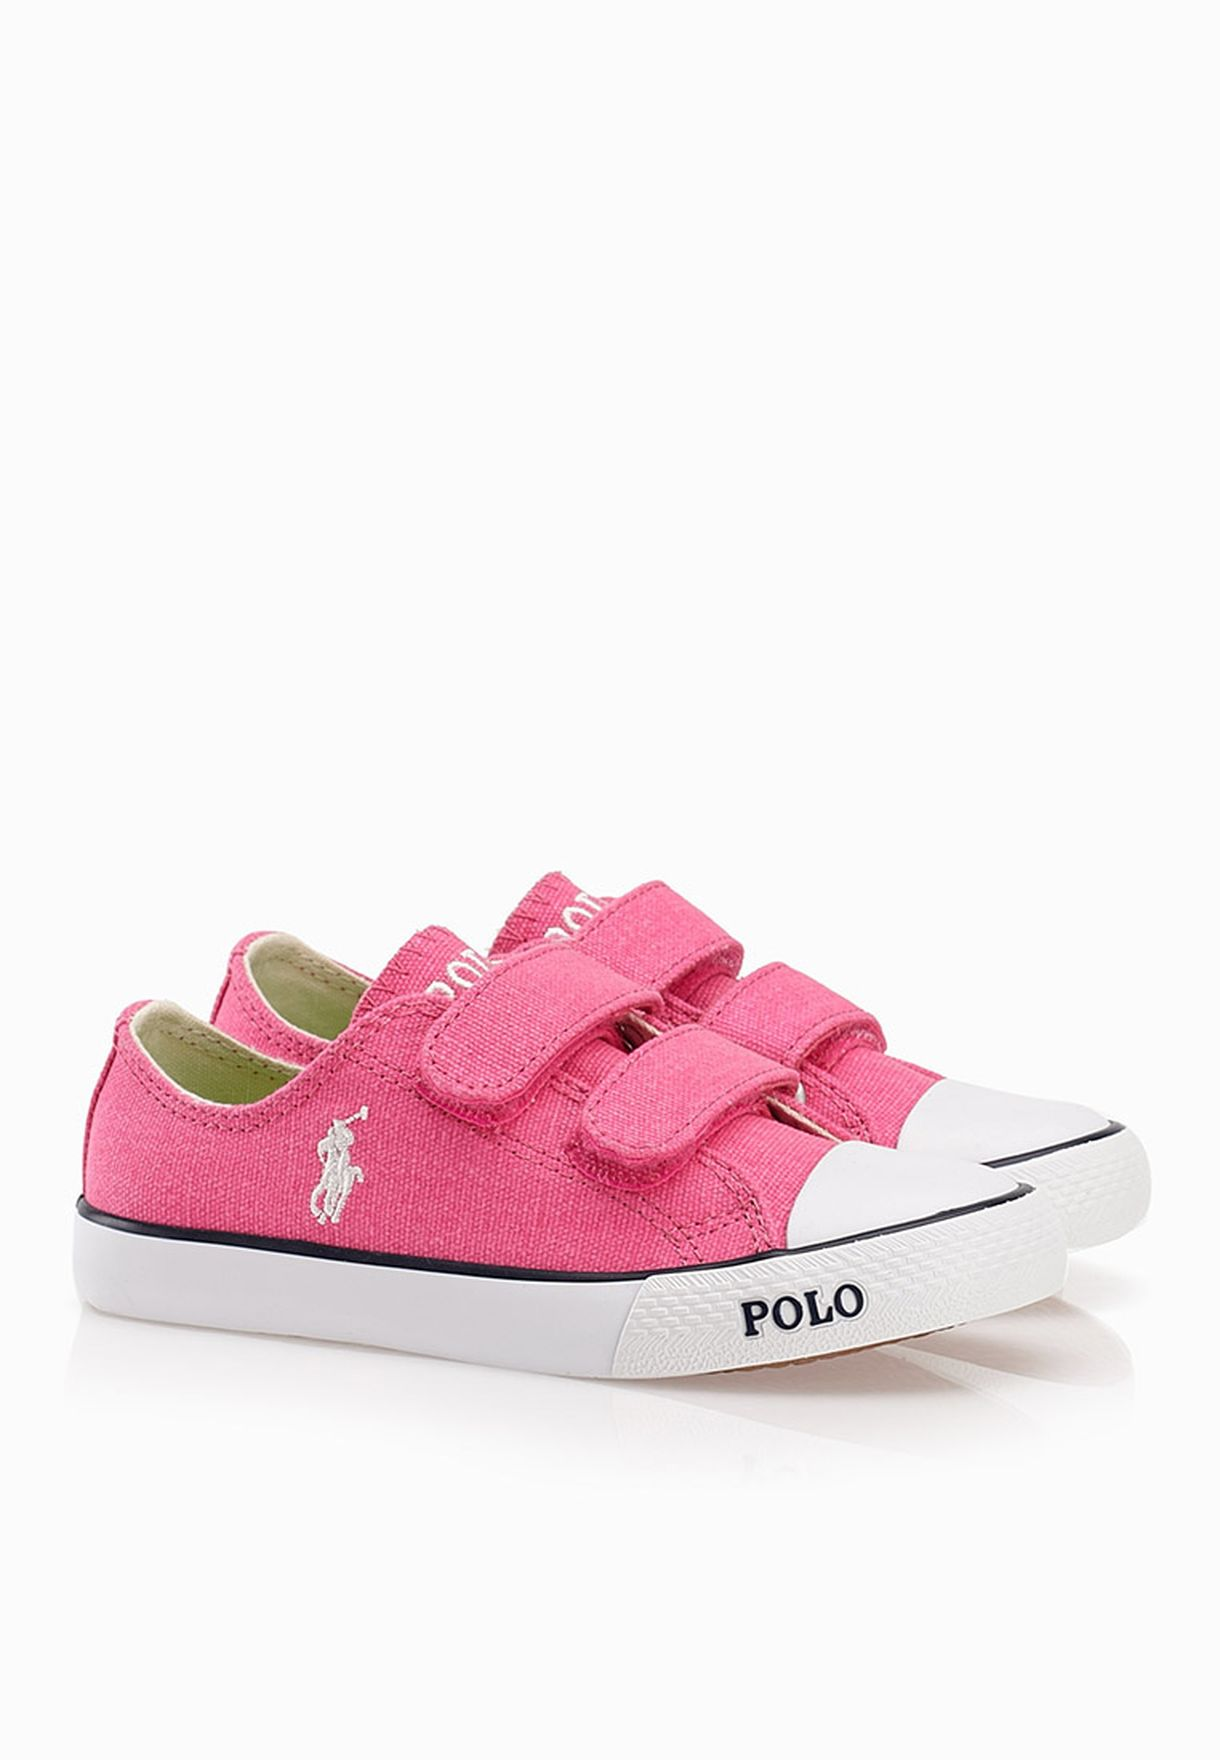 5ba1b87507 Shop Polo Ralph Lauren pink Carson Ez Kids C991819 for Kids in Saudi -  PO013SH90RUR